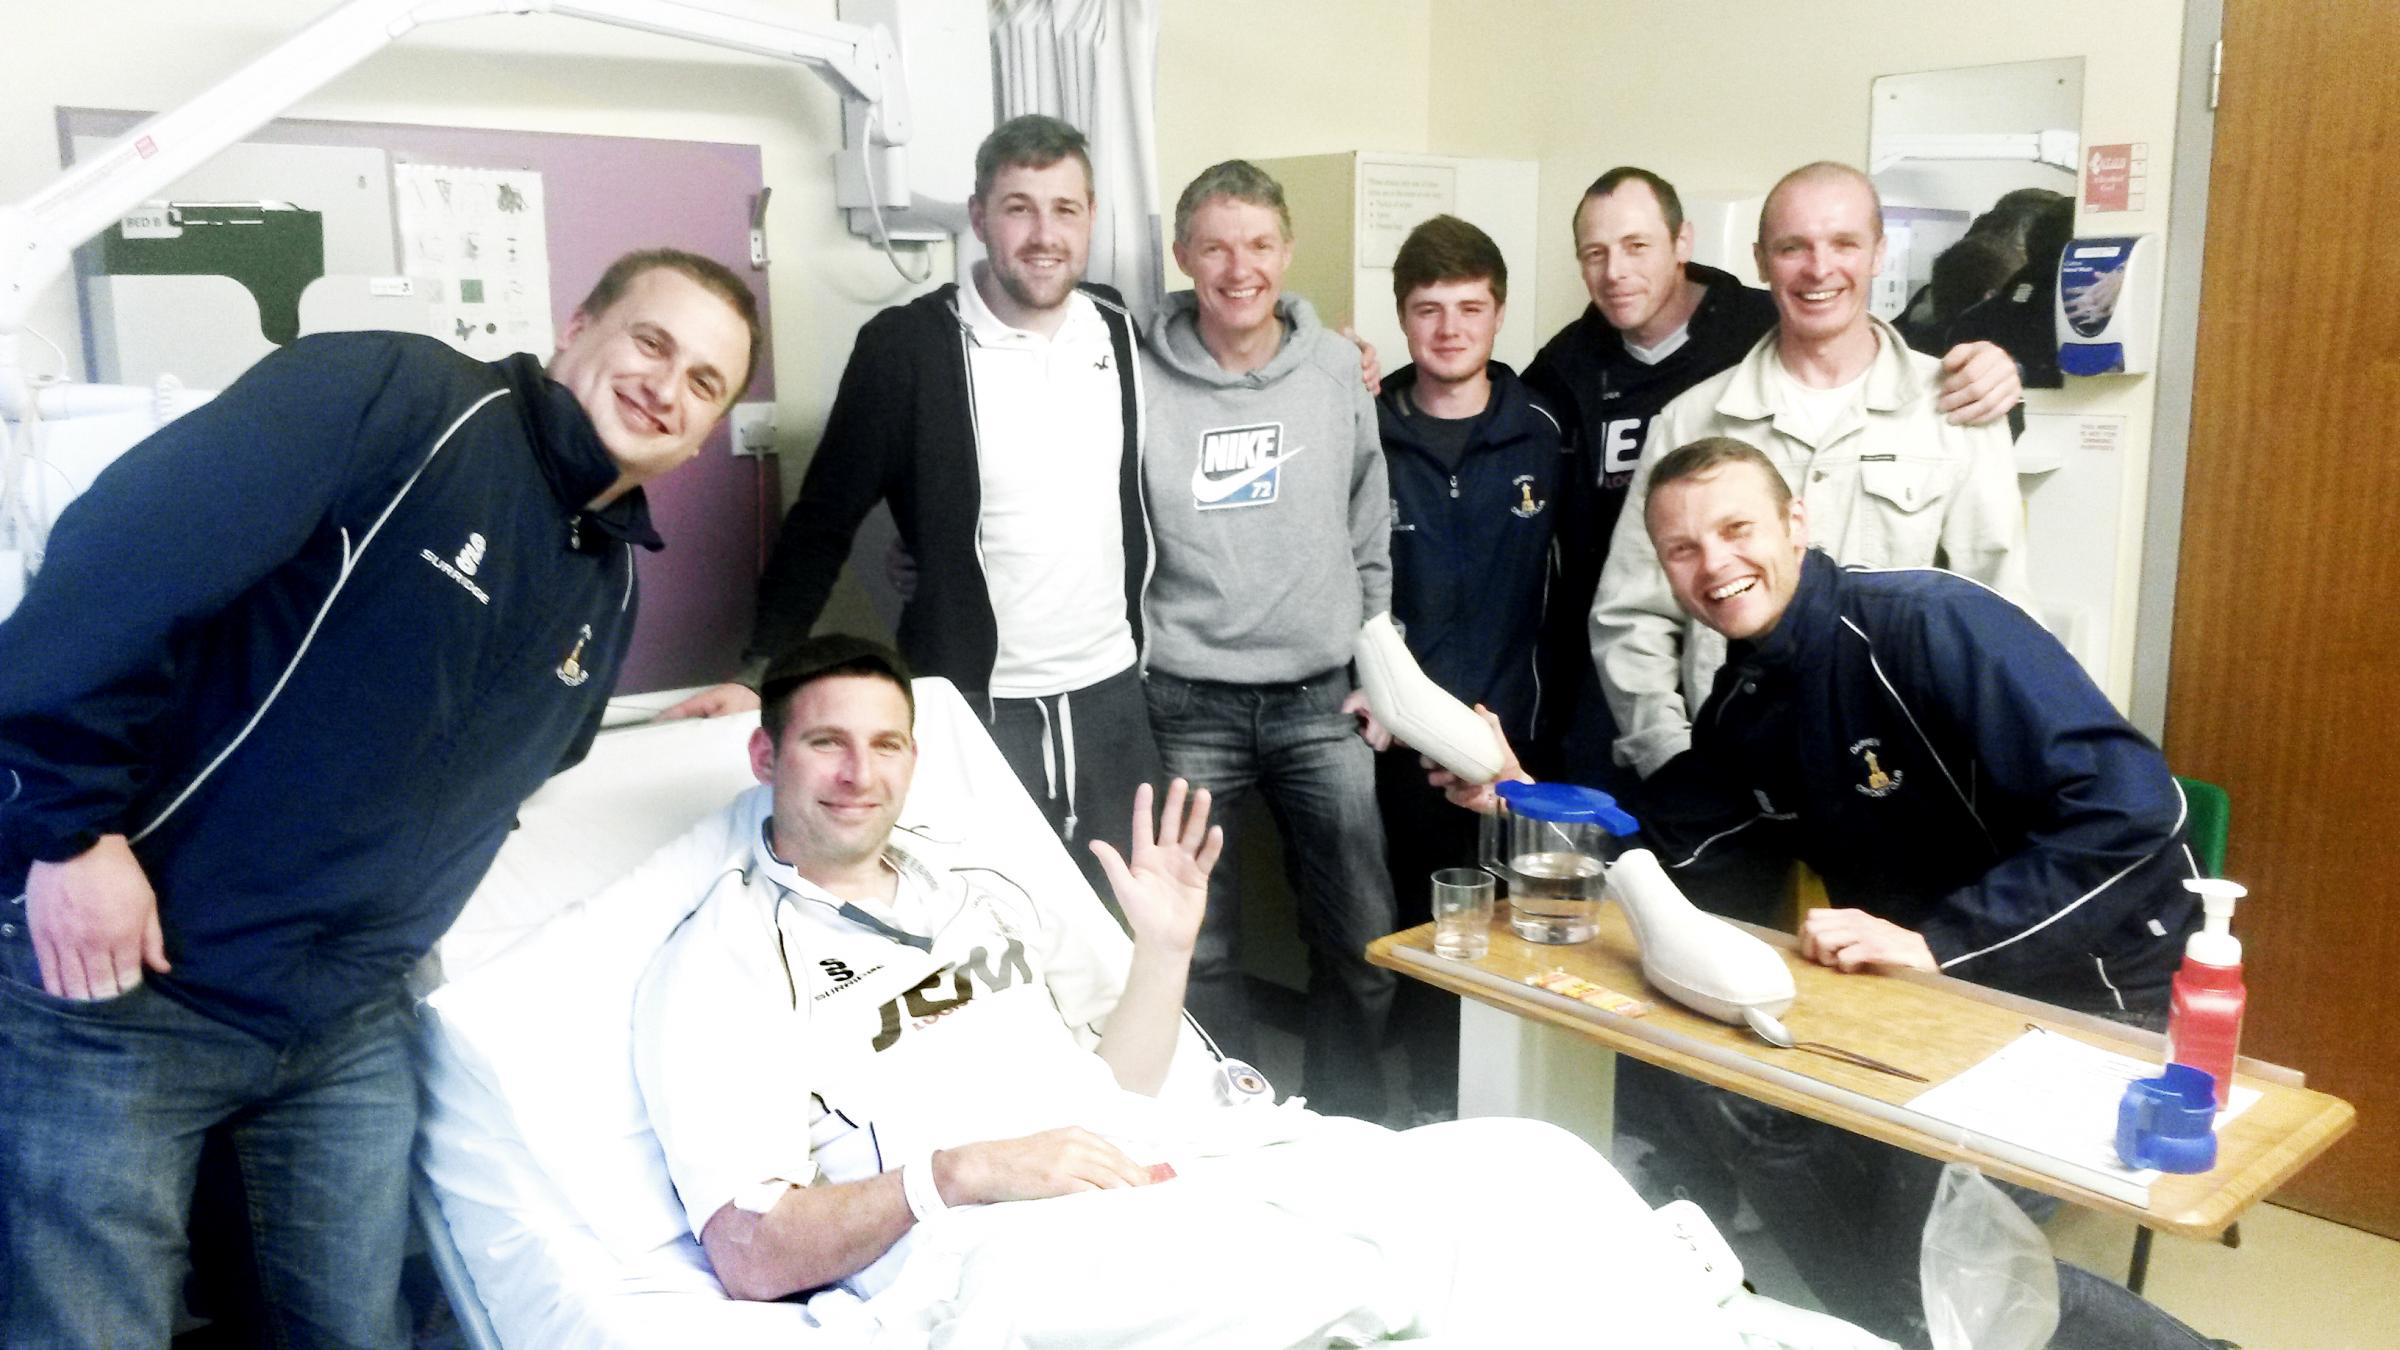 Andrew Cook and his team-mates at Furness General Hospital